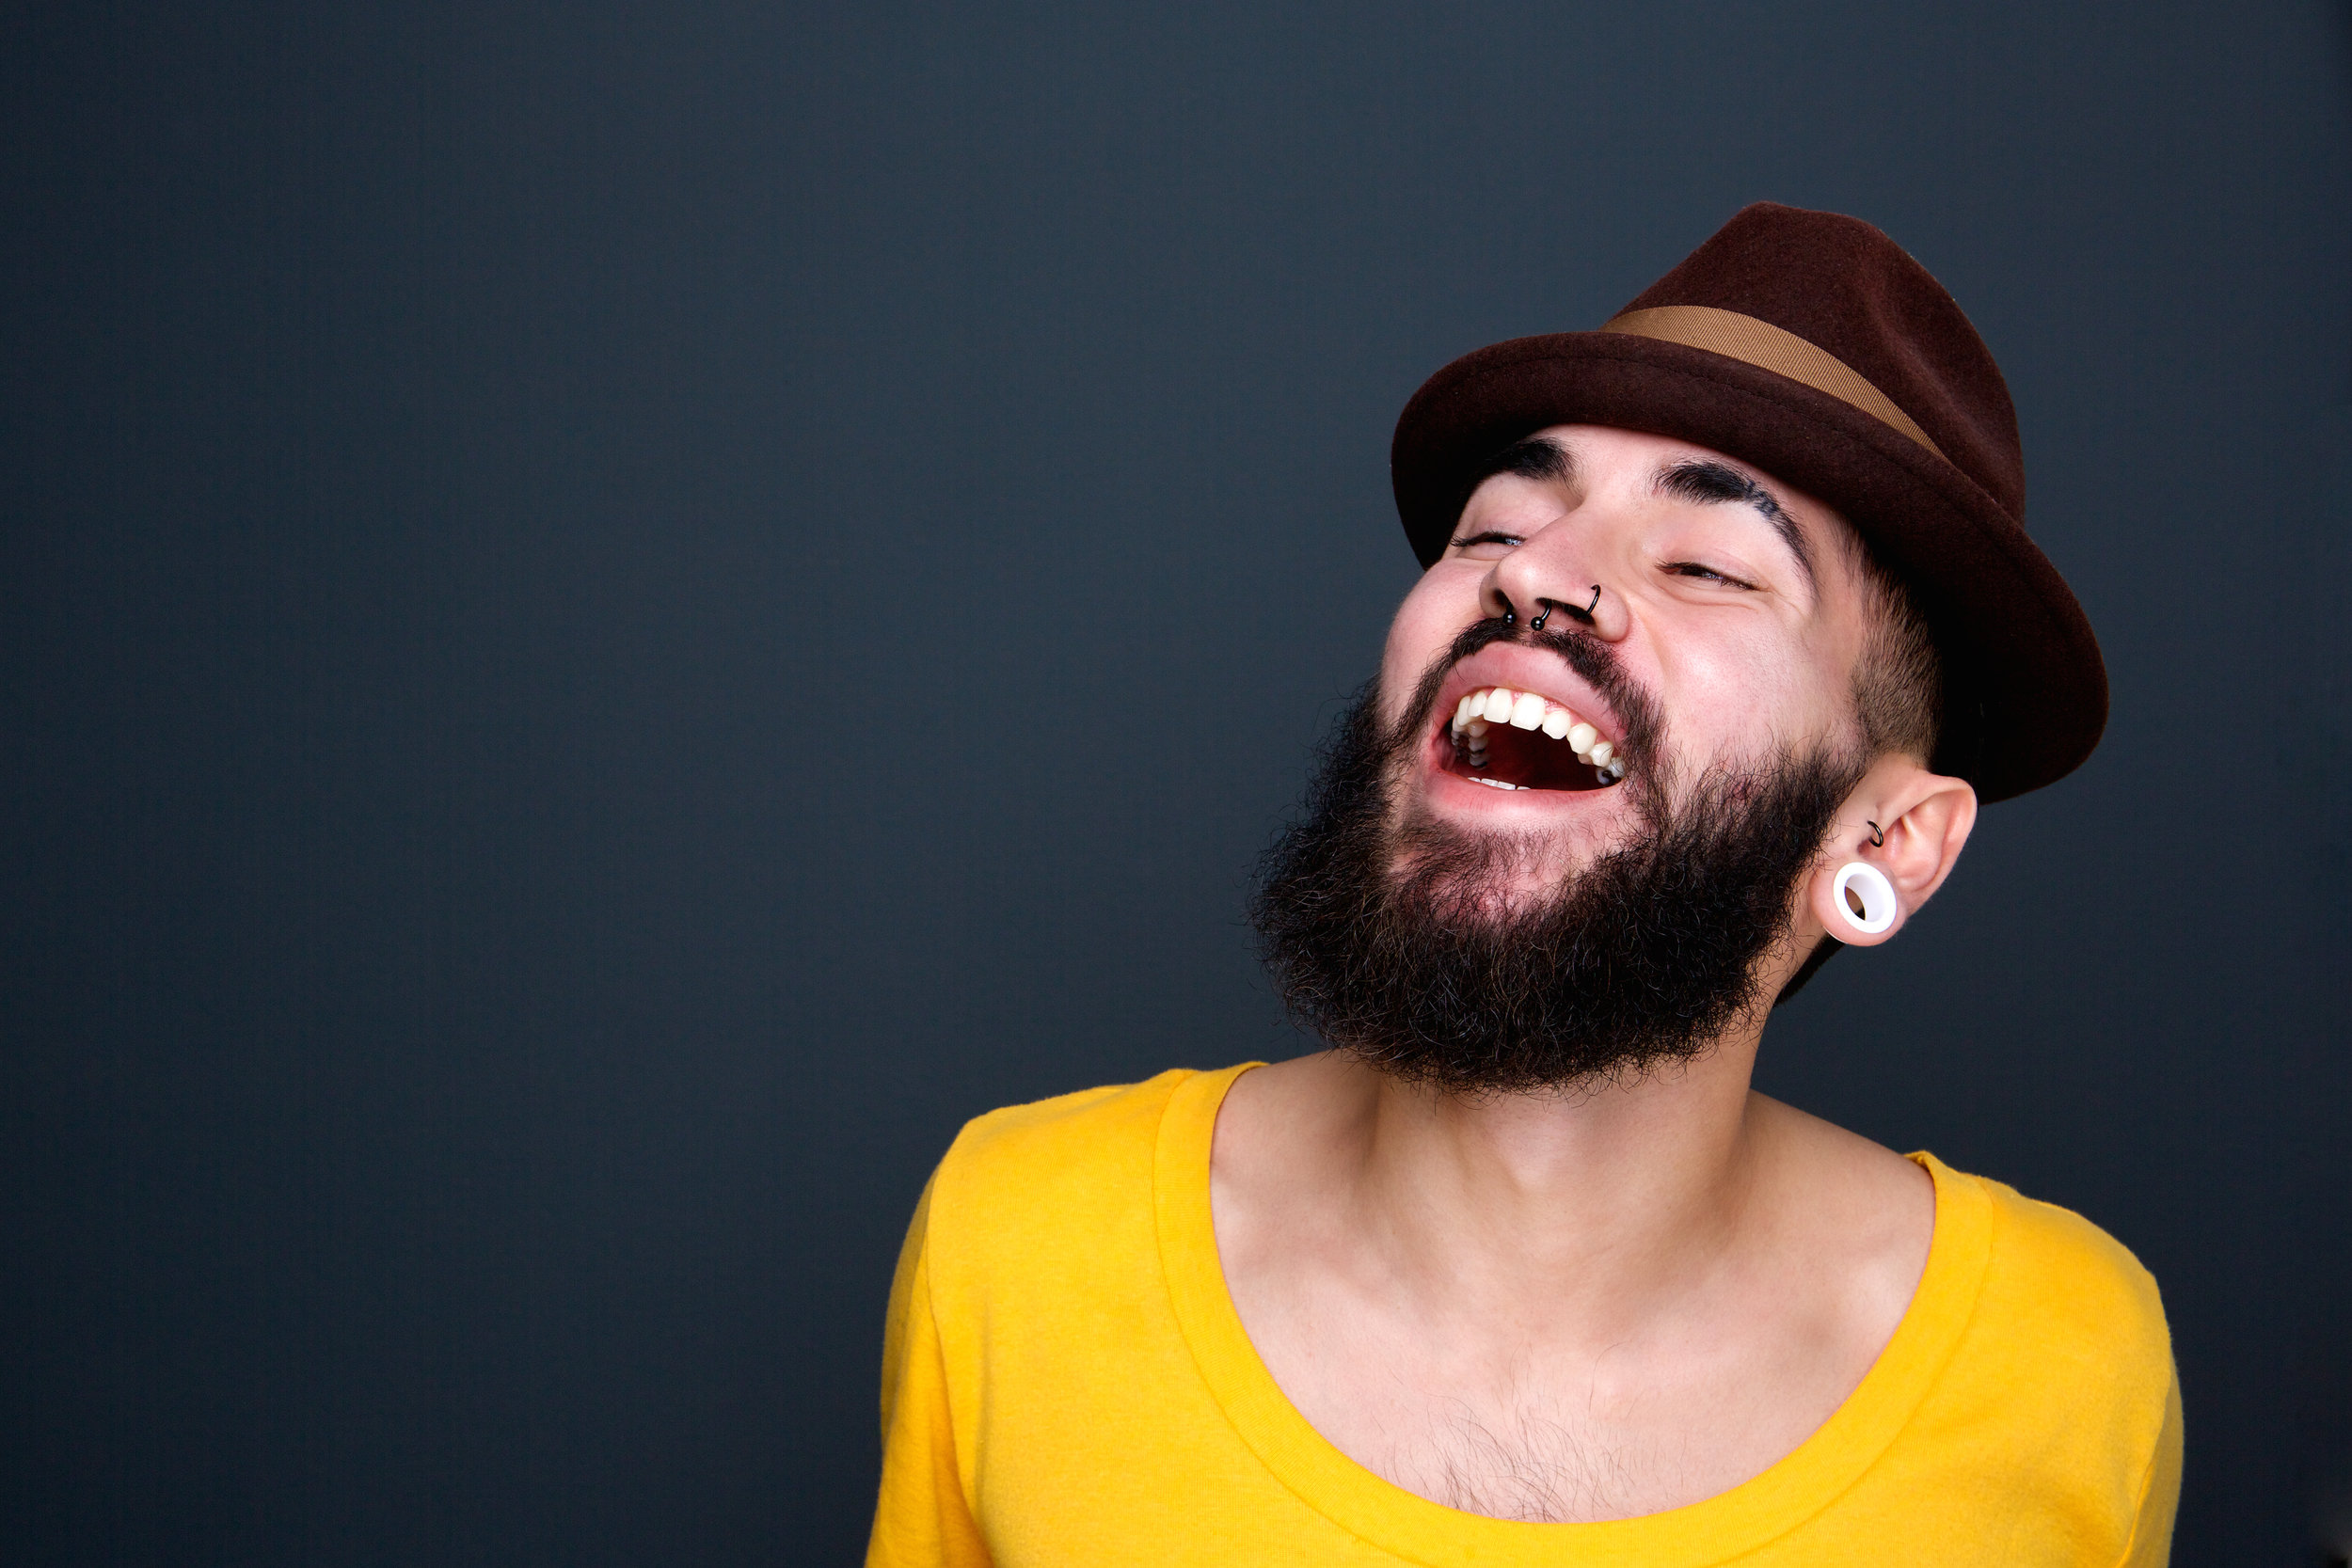 man-with-beard-and-hat-laughing-PHN6LEJ.jpg